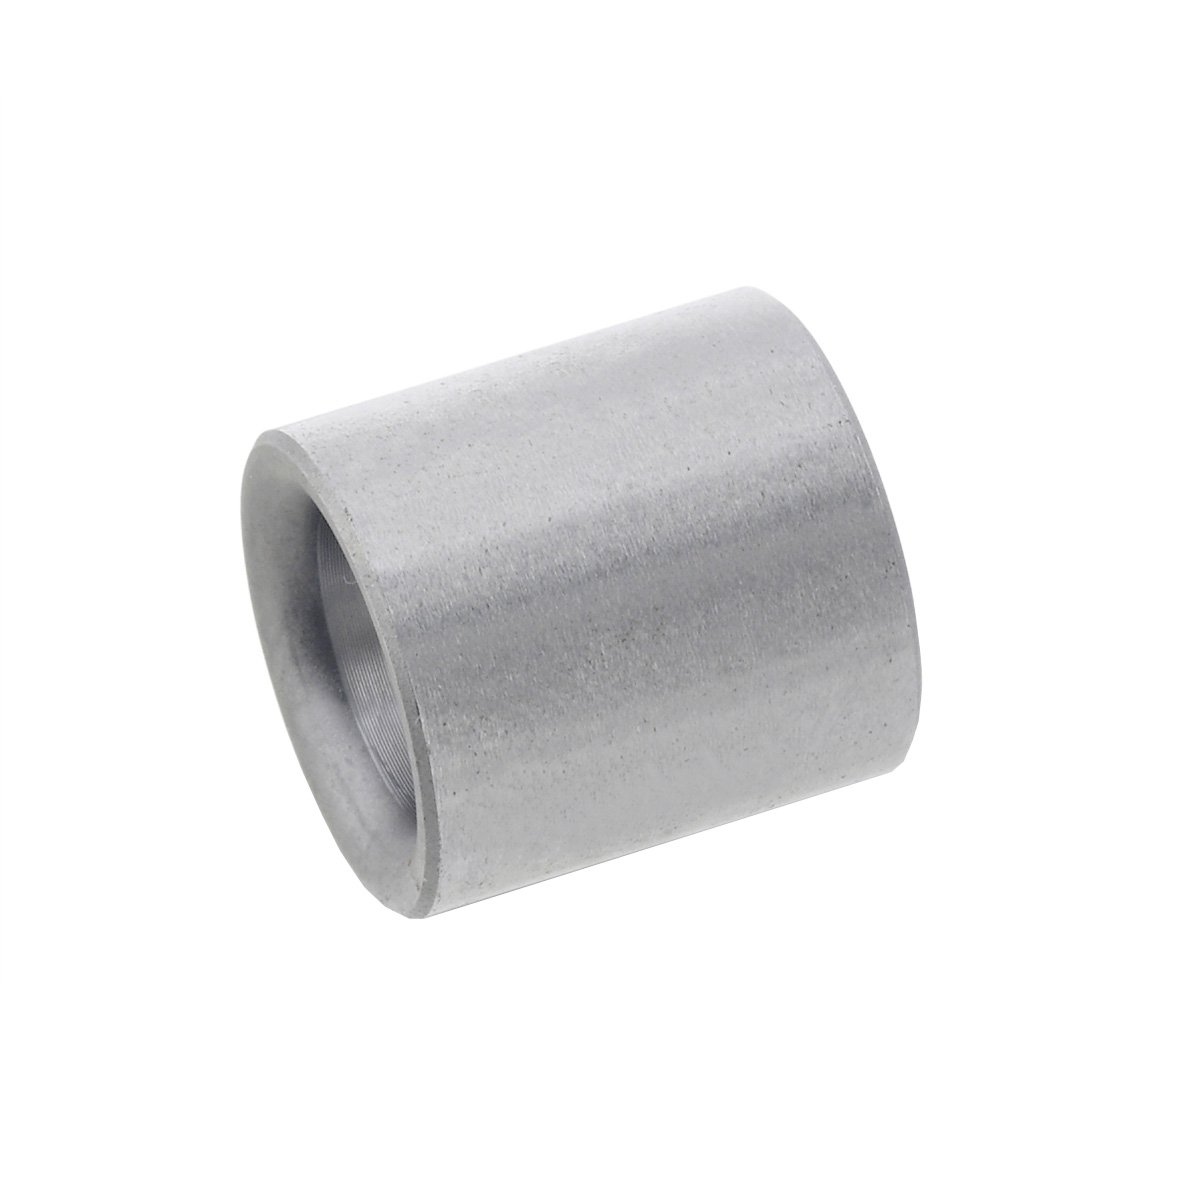 J.W. Winco 5M10HDC GN770 Locating Pin Bushing, Hardened to HRC 60, Ground, ISO Tolerances, Steel, 10 mm Length, 5 mm ID